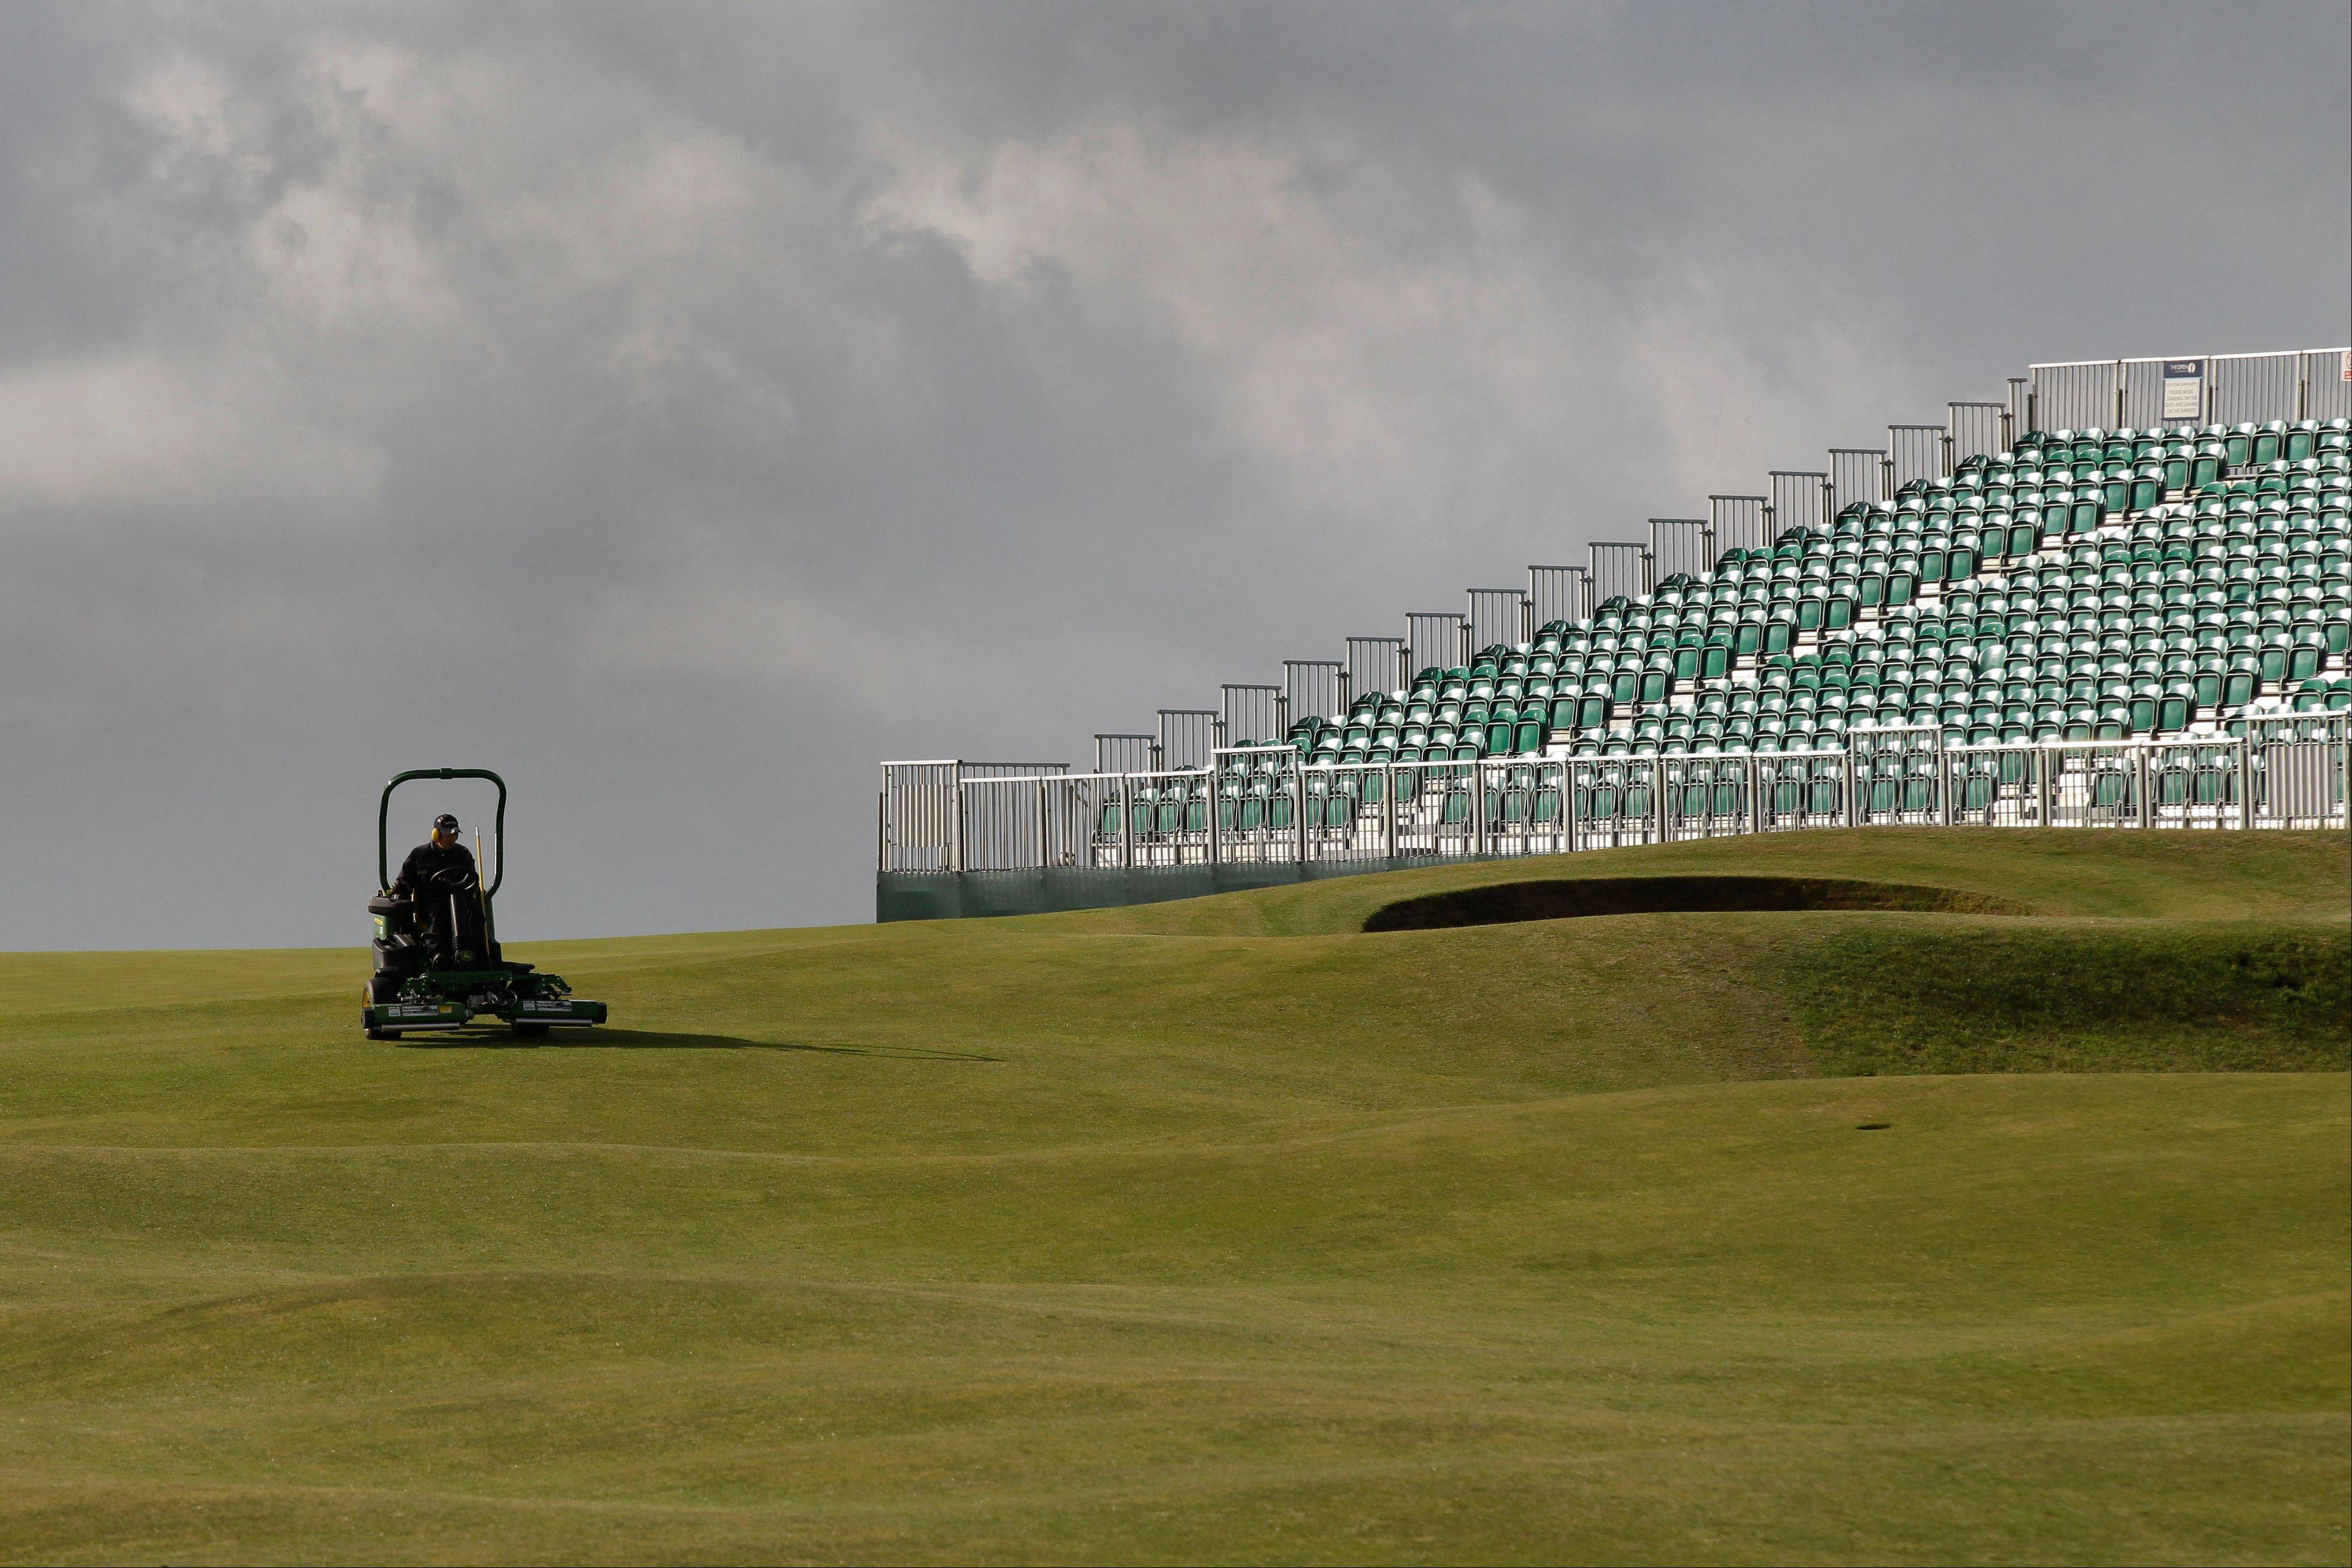 A member of the grounds crew prepares a green on the course in preparation for the British Open golf championship at the Royal St. George's Golf Club in Sandwich, England. The Open Championship is to be held on July 14-17.